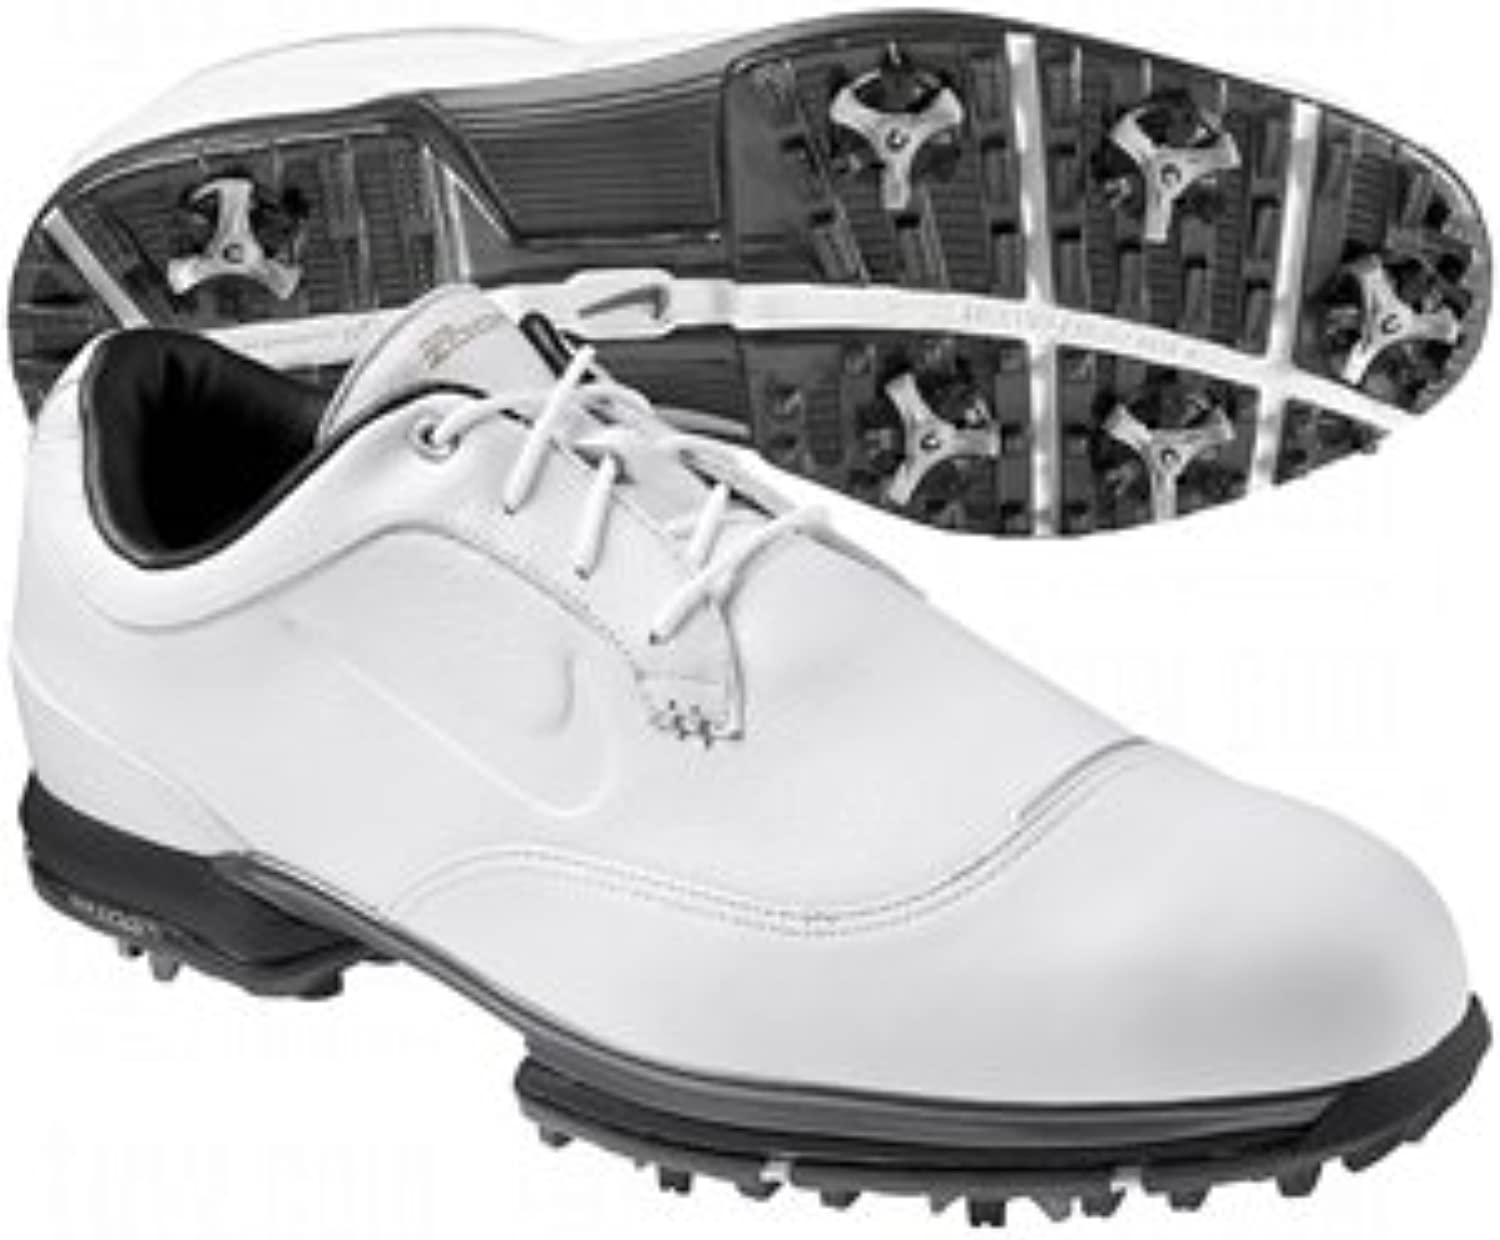 Nike Tour Premium II 483243 – 101 blanco tamaño 42,5 US 9 UK 8 27 cm